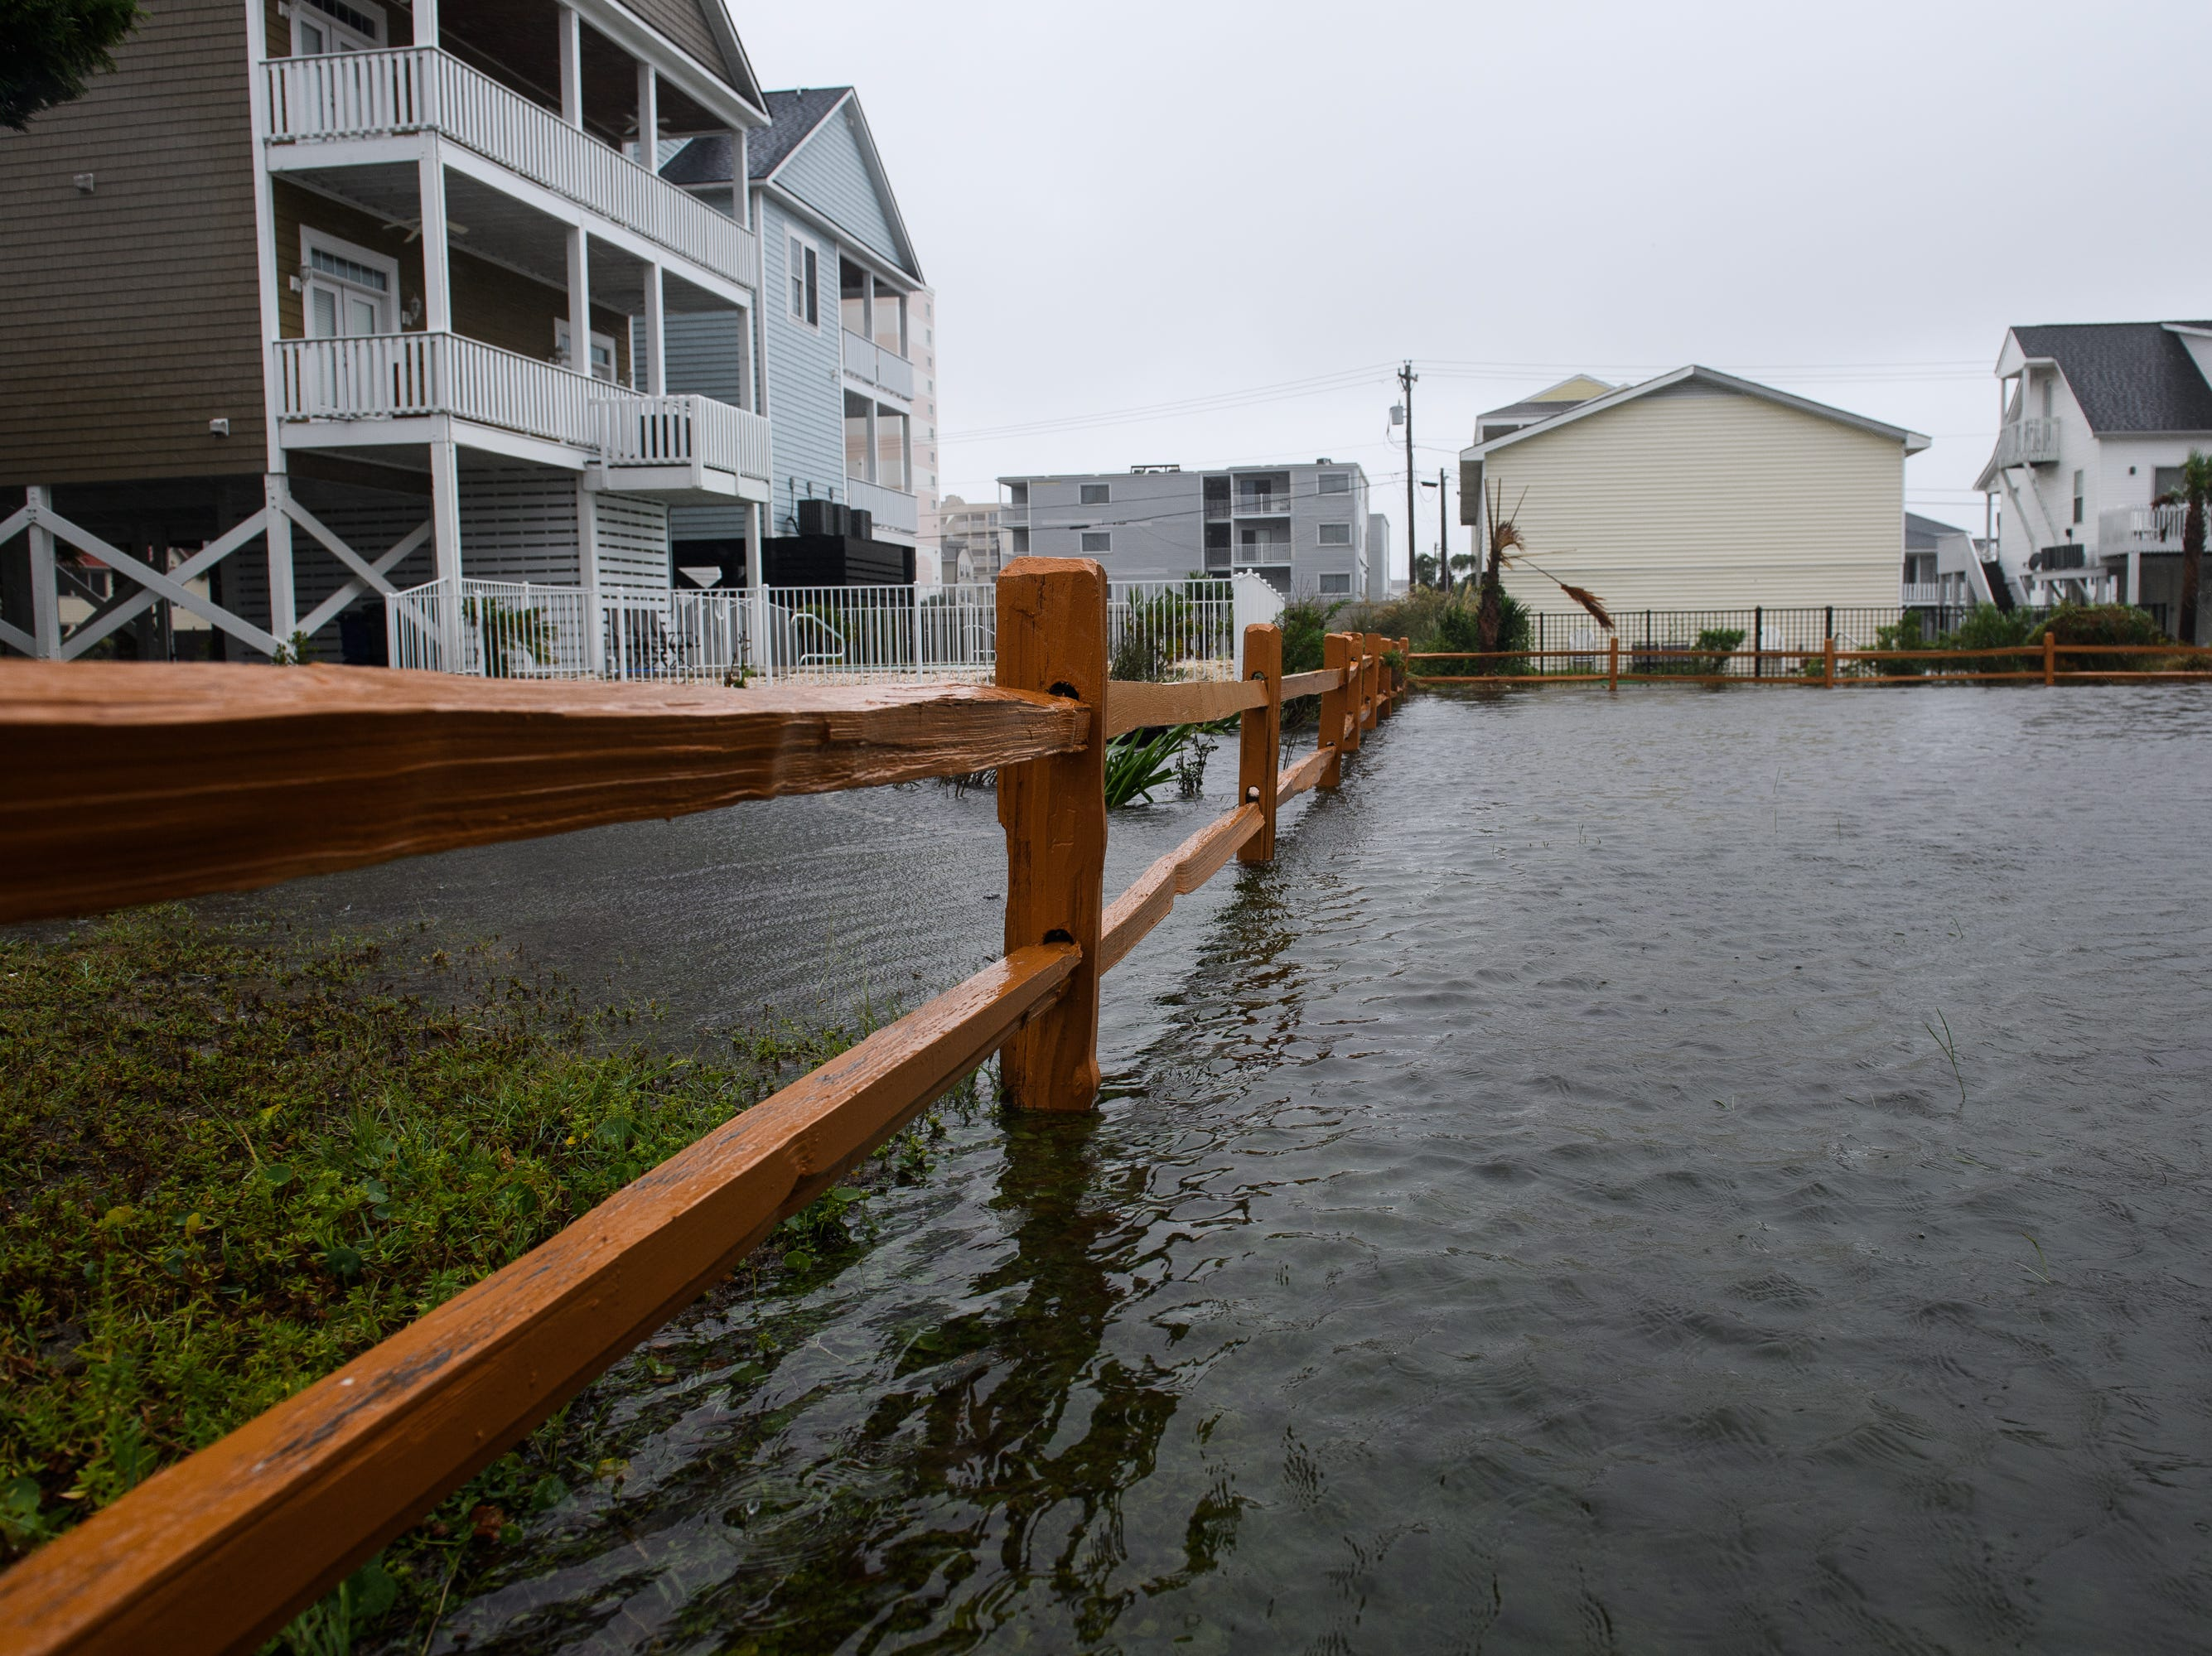 The yard of a home is flooded in the Cherry Grove neighborhood in North Myrtle Beach on Saturday, Sept. 15, 2018.